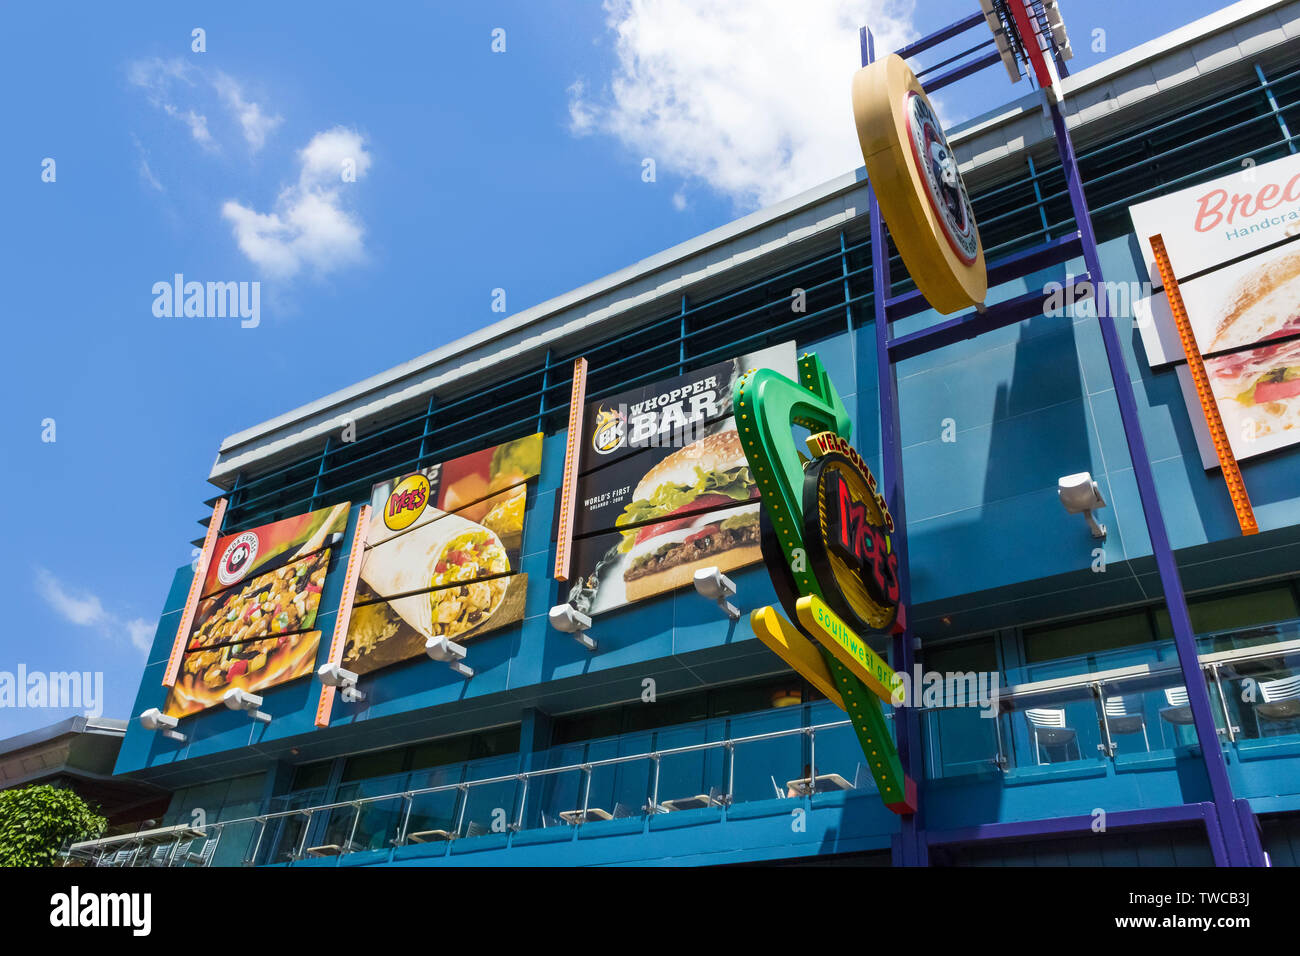 Orlando, USA - May 9, 2018: The Universal City Walk is the mall at the entrance of the Universal Studios Orlando - Stock Image